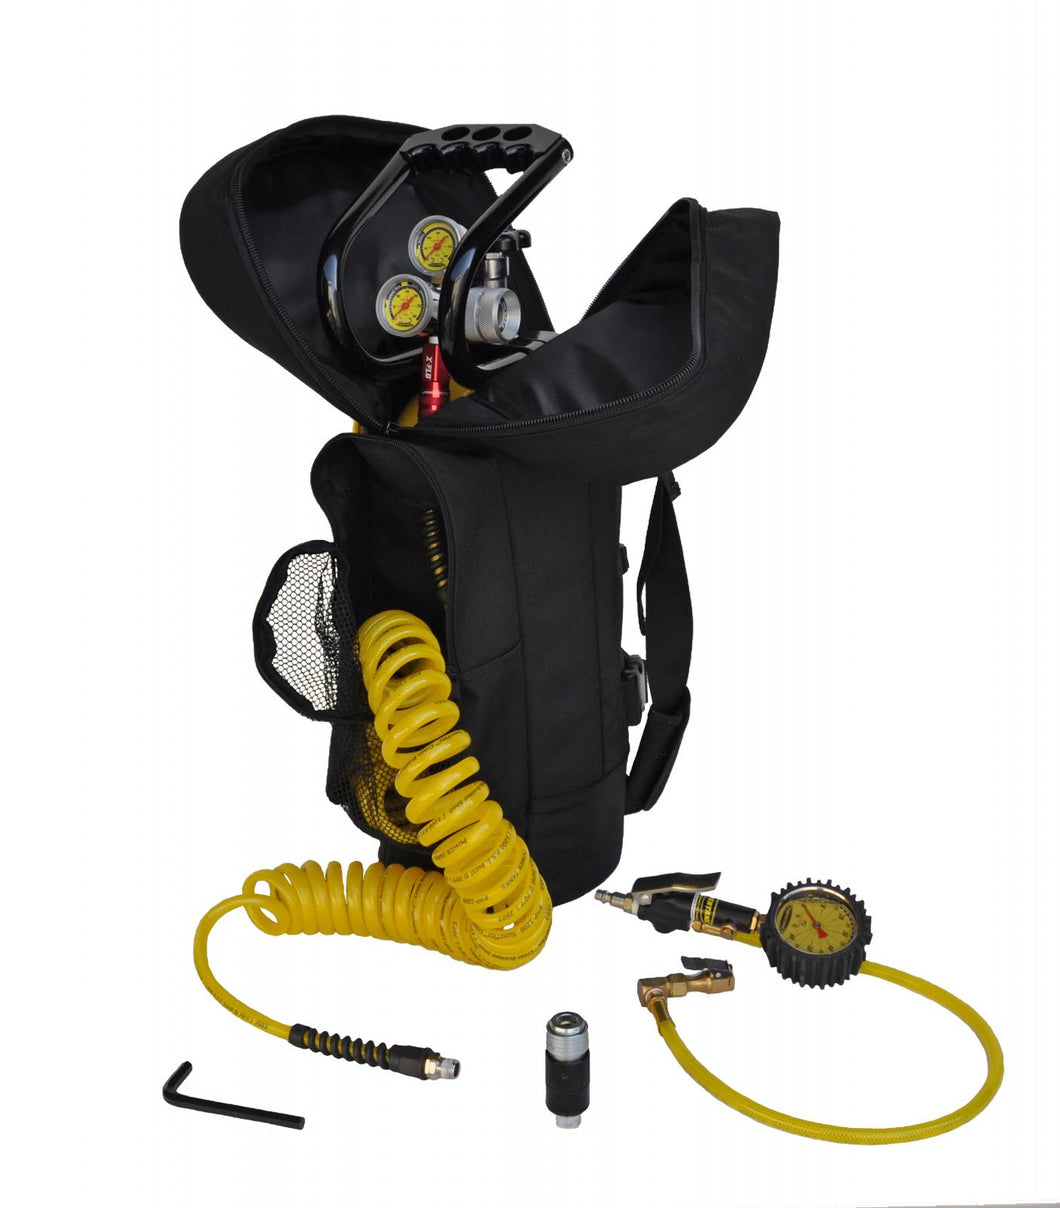 CO2 Tank 10 LB Track Pack Package B System 250 PSI Team Yellow Power Tank